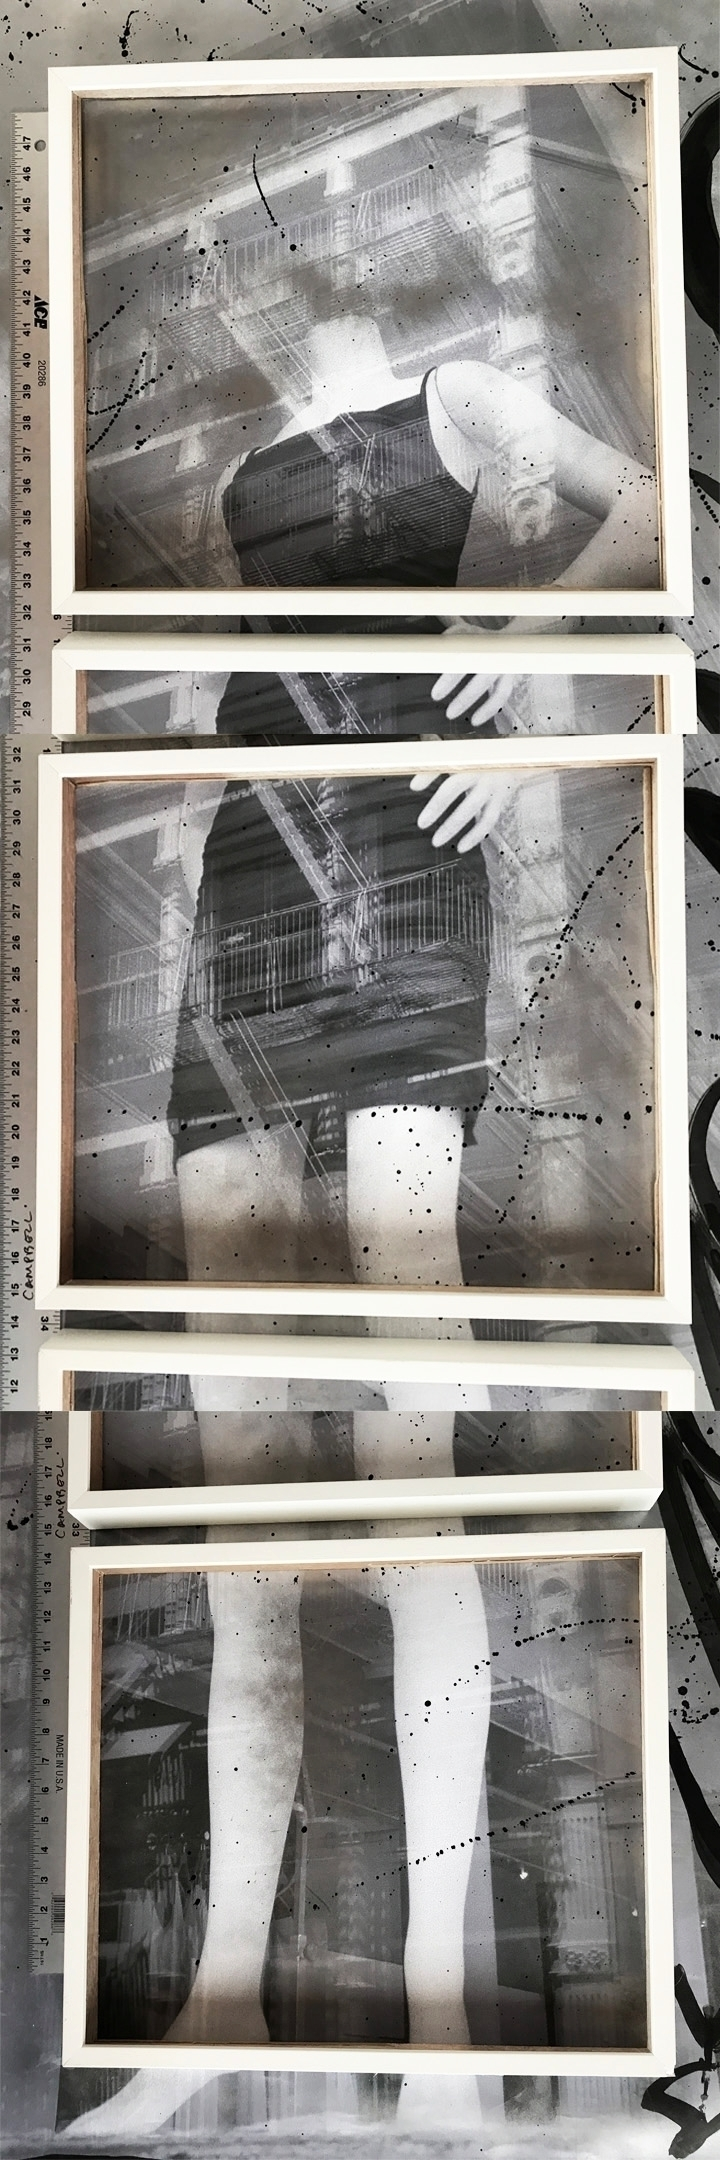 photo started single print shif - mikecampbell | ello